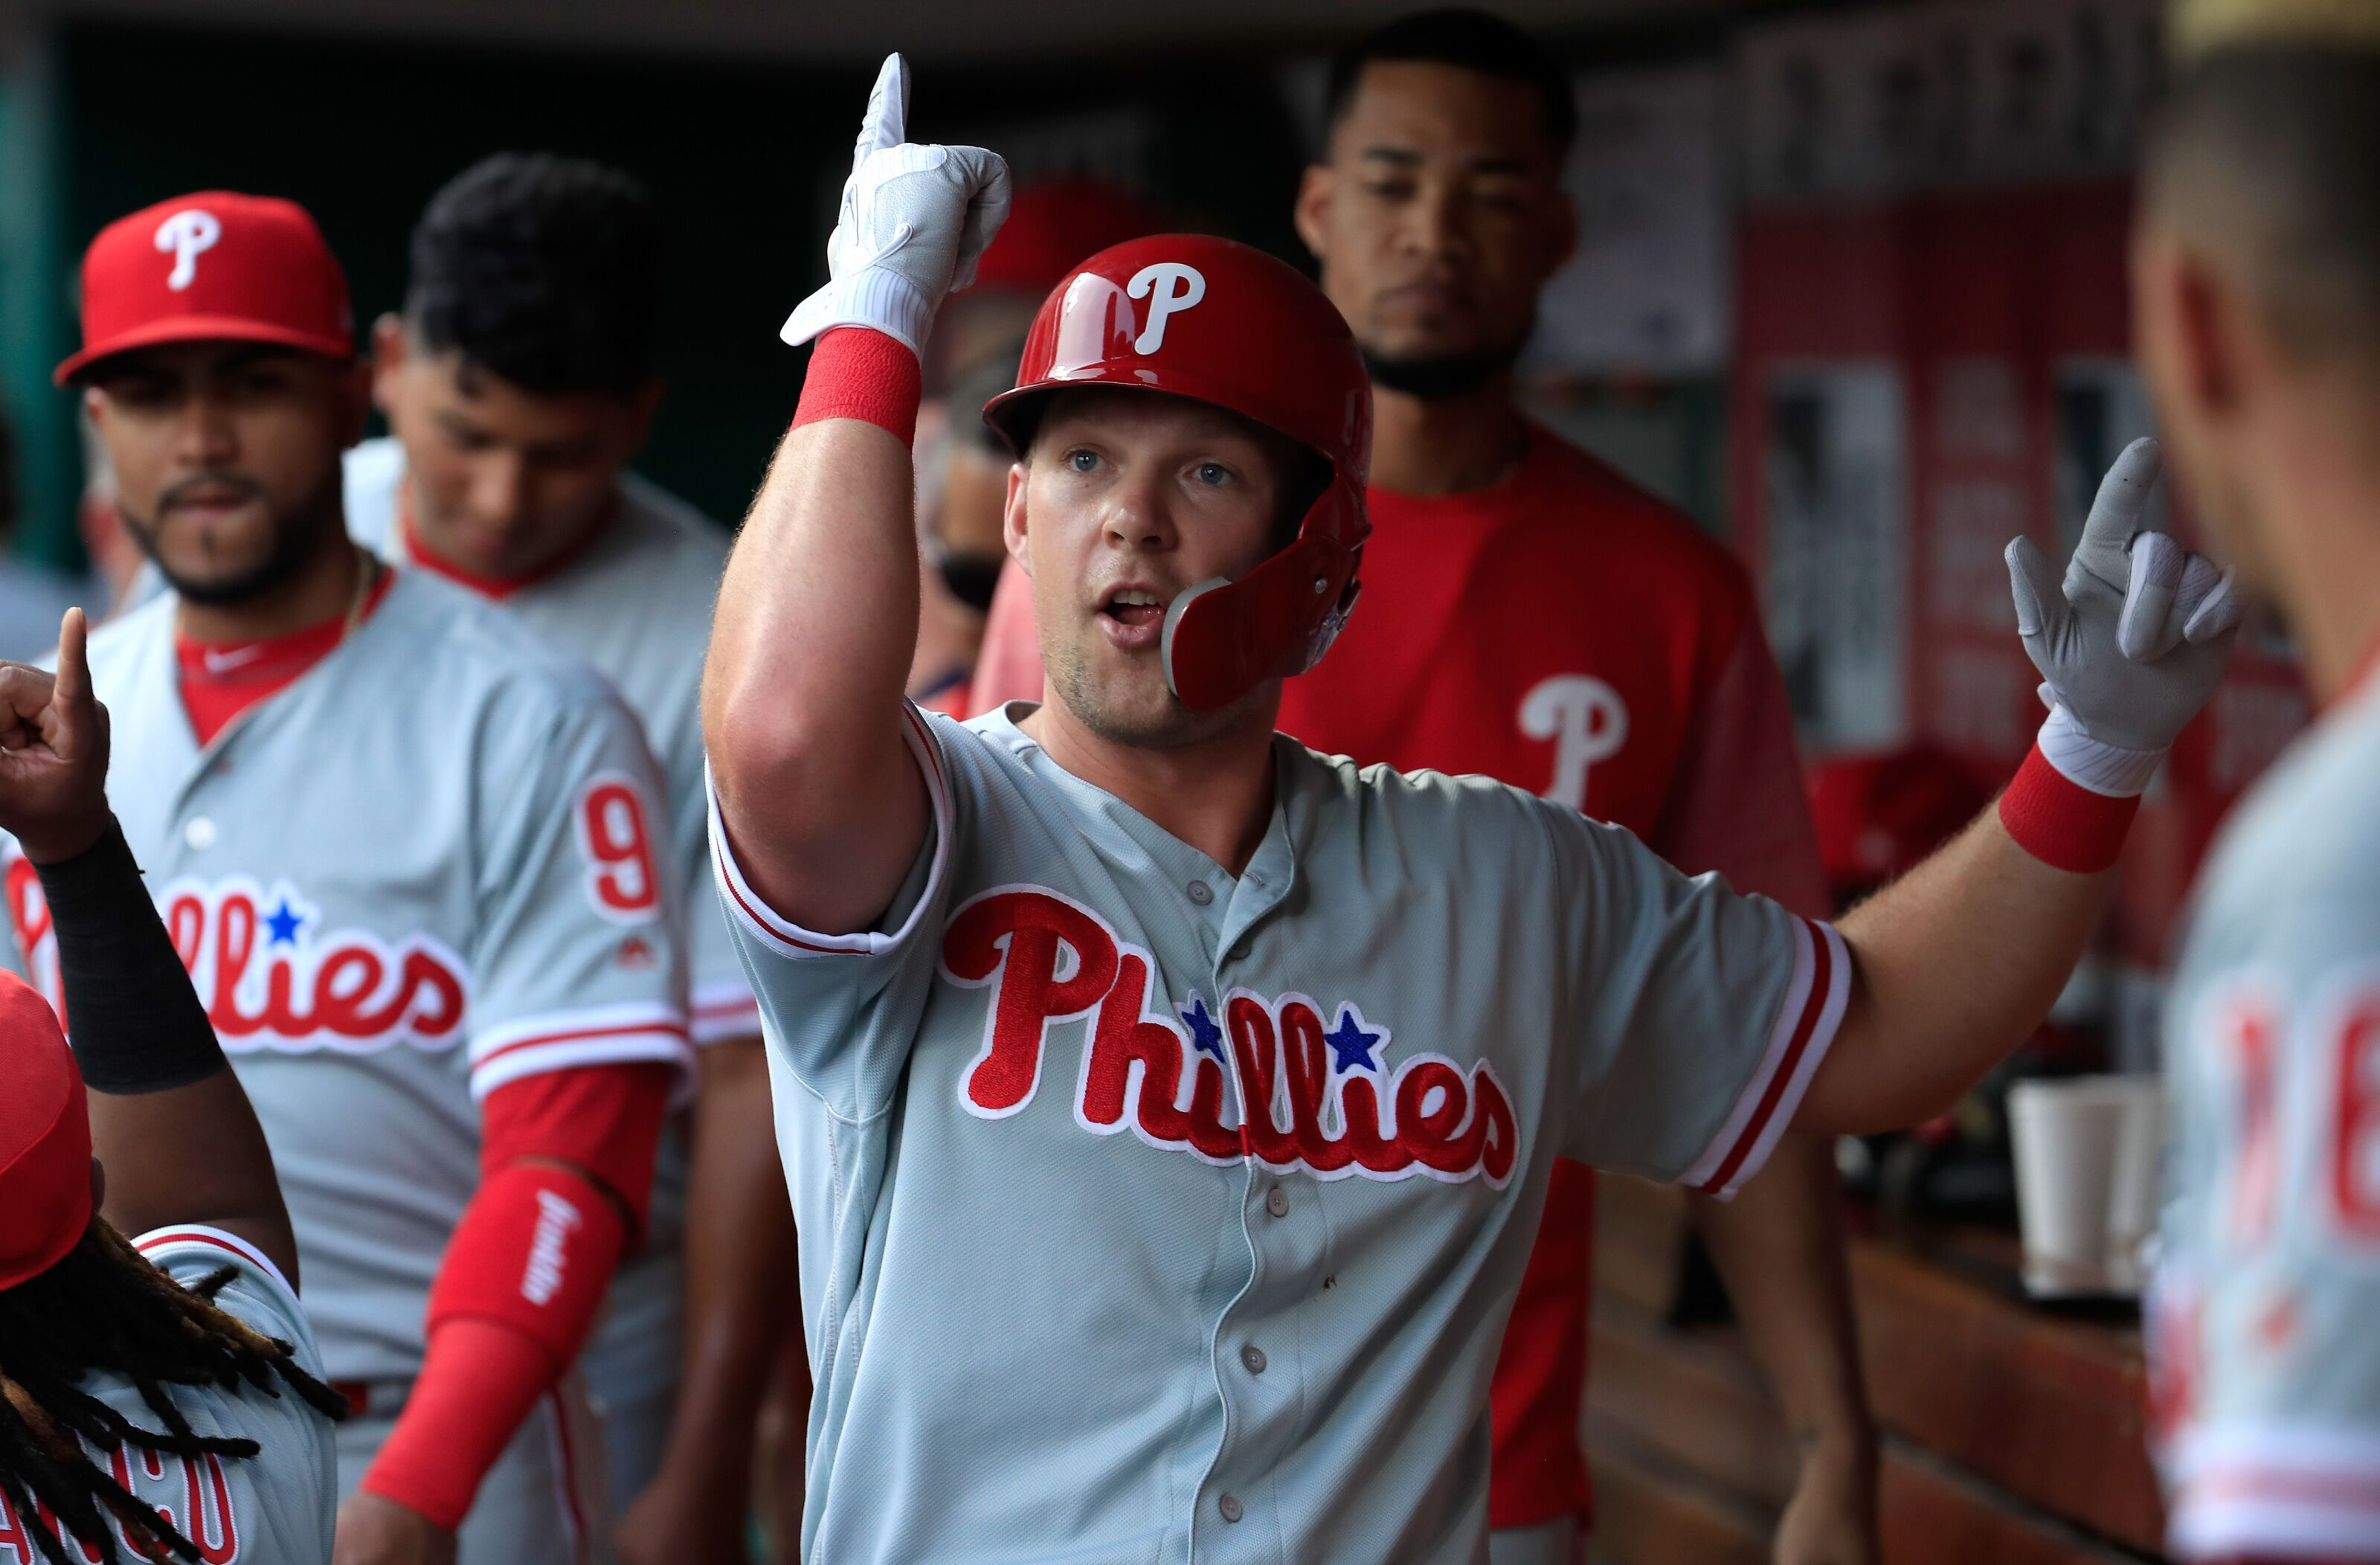 ad303739 Philadelphia Phillies Philes Vol 1.4: Holding down first